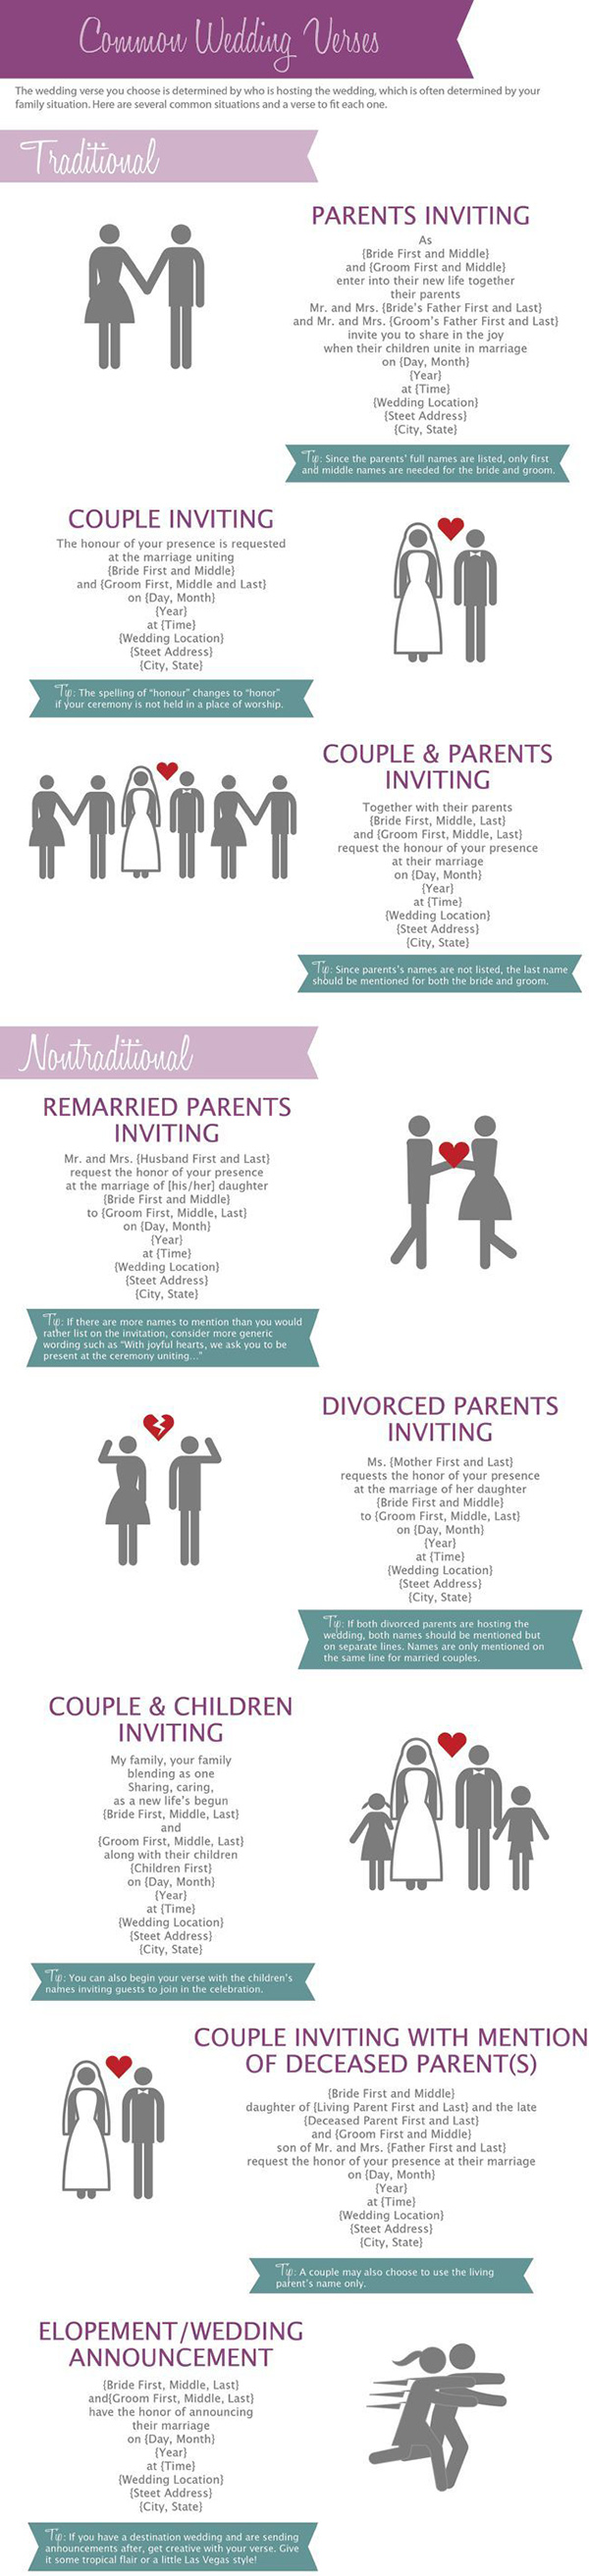 etiquette and samples for wedding invitation wordings